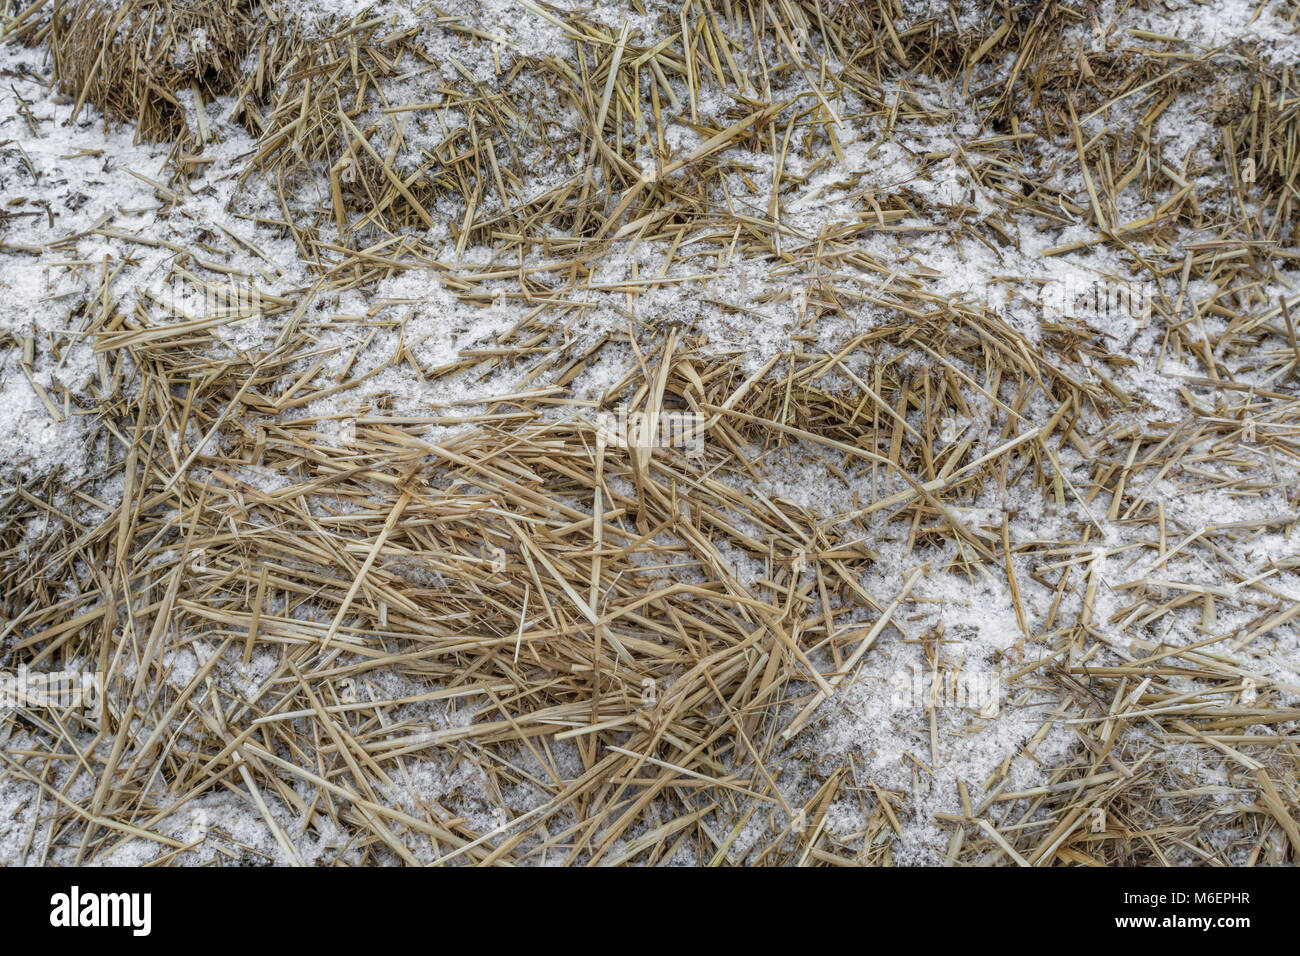 Snow covered strands of hay on a farmyard muck heap during a cold winter snap. - Stock Image